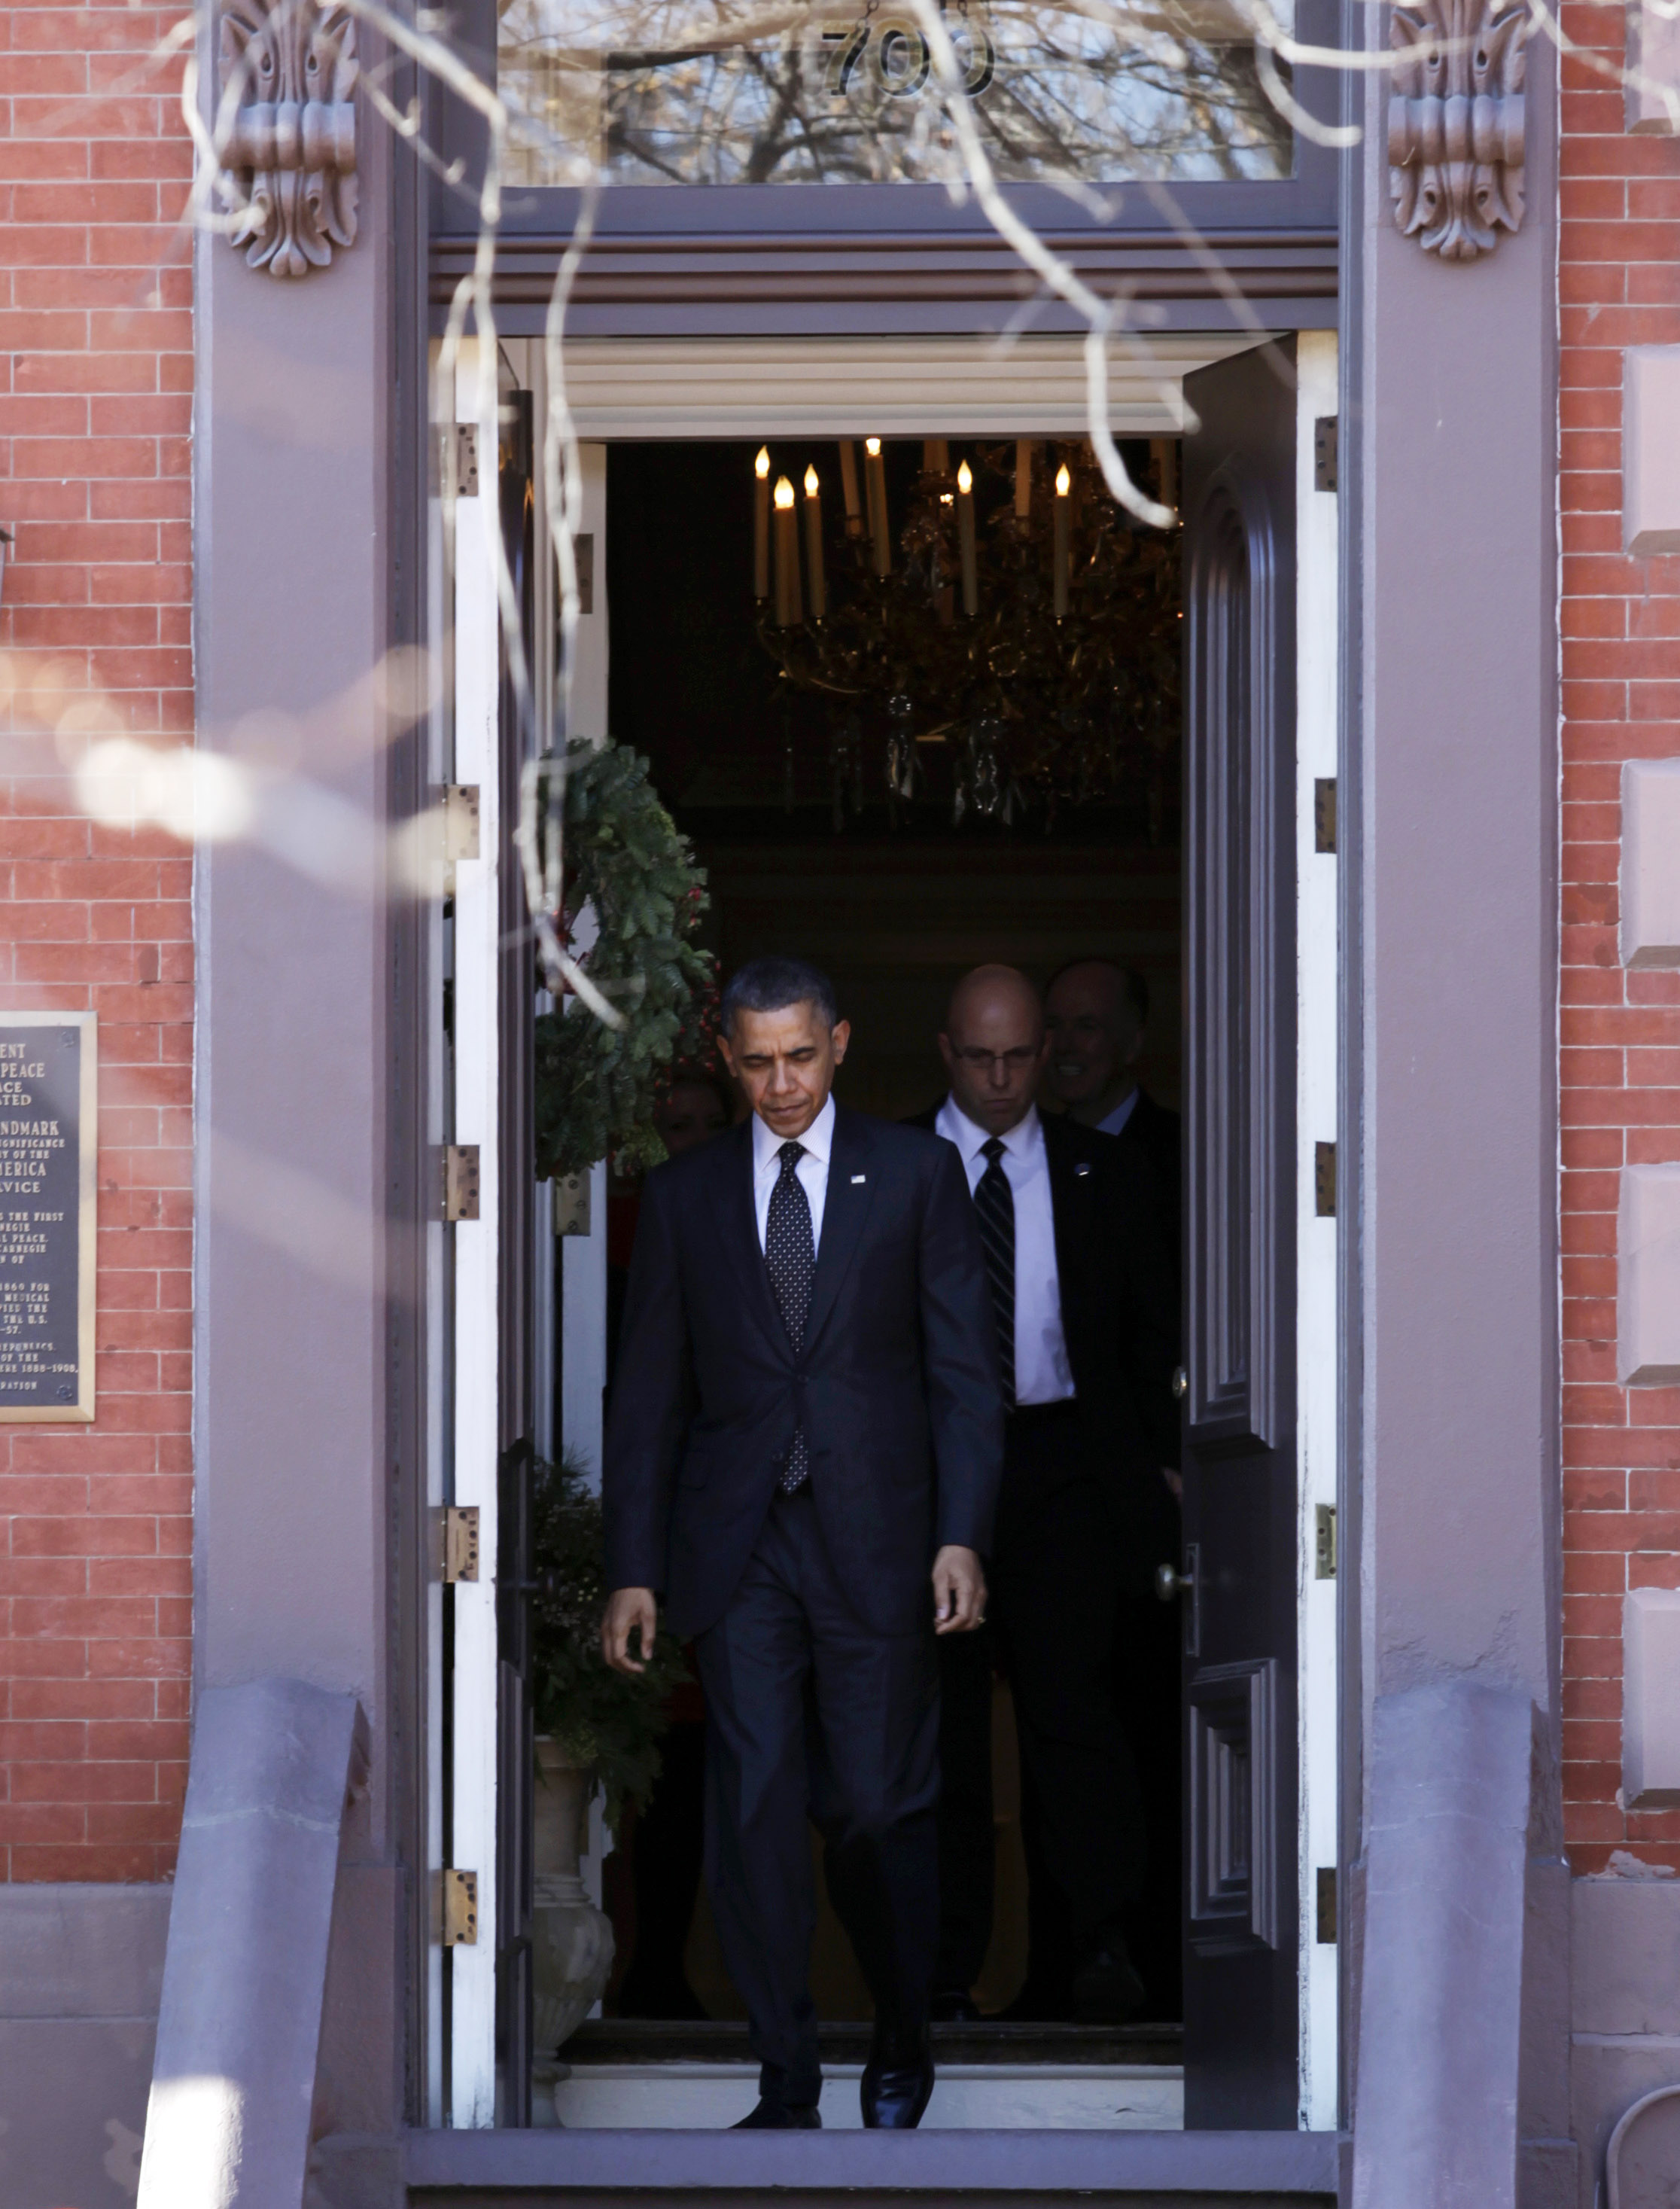 President Barack Obama leaving a National Security Agency Christmas party held across the street from the White House at the Blair House last December.